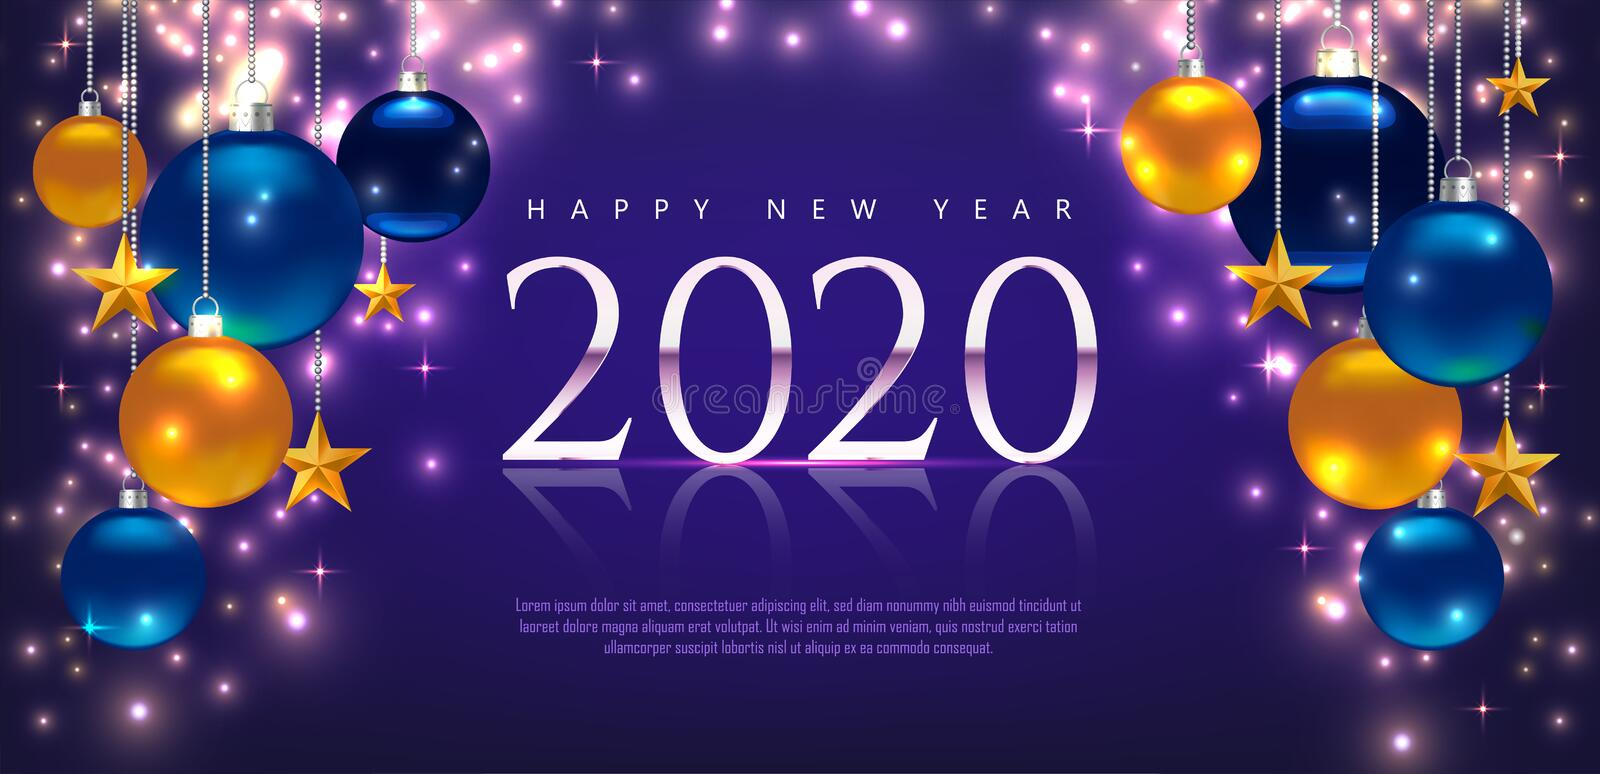 Magic template with greeting Happy New Year 2020. Template for Card, Flyer, poster, invitation, banner. Promotion or shopping. Template. Illustration with balls stock photos